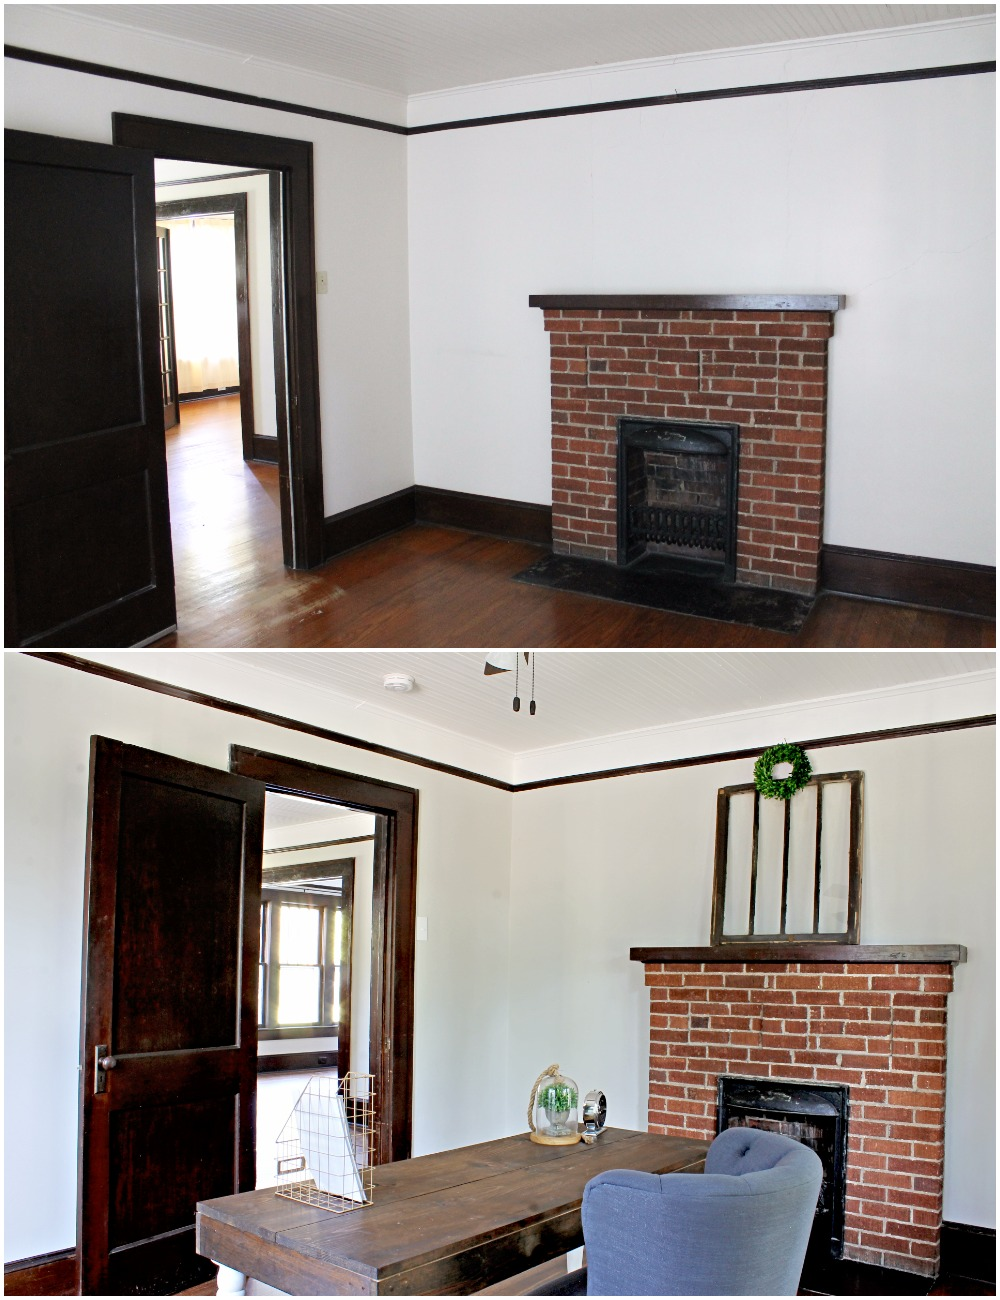 House Flipping Before and Afters - Office Staging Ideas, Wood Trim Paint Colors - Sherwin Williams Repose Gray 11